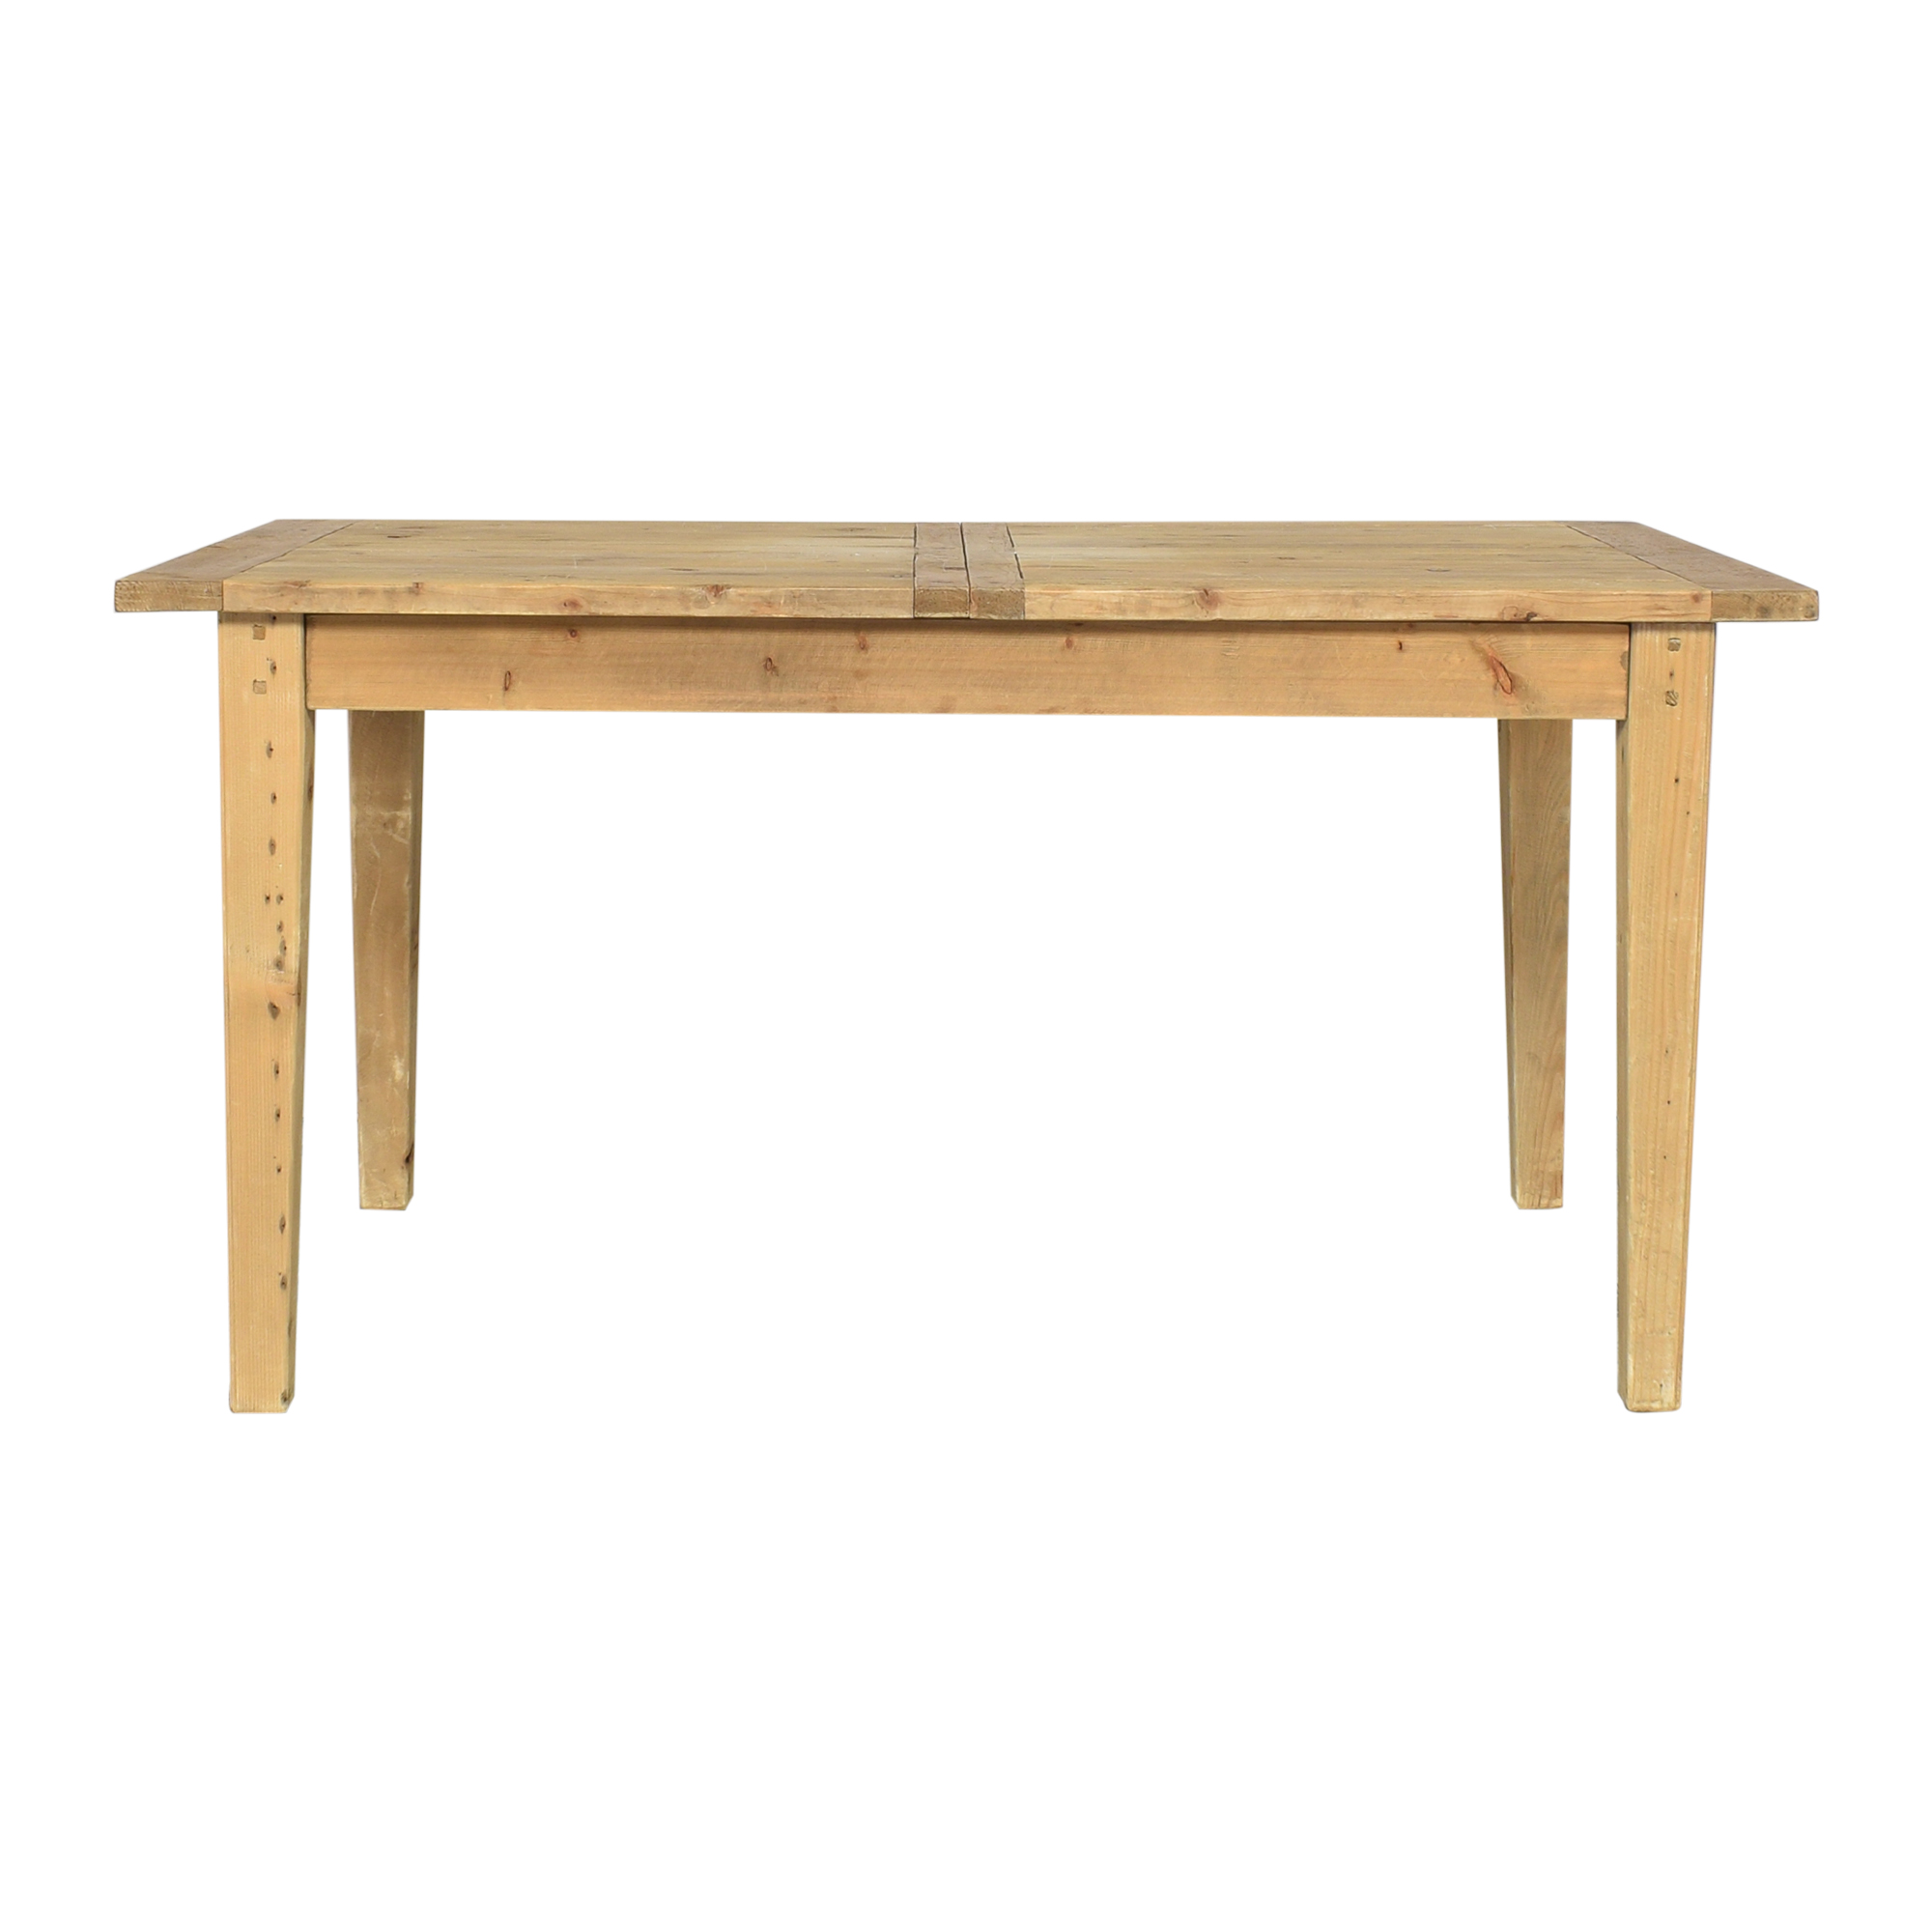 Restoration Hardware Restoration Hardware 1900s Boulangerie Extension Dining Table